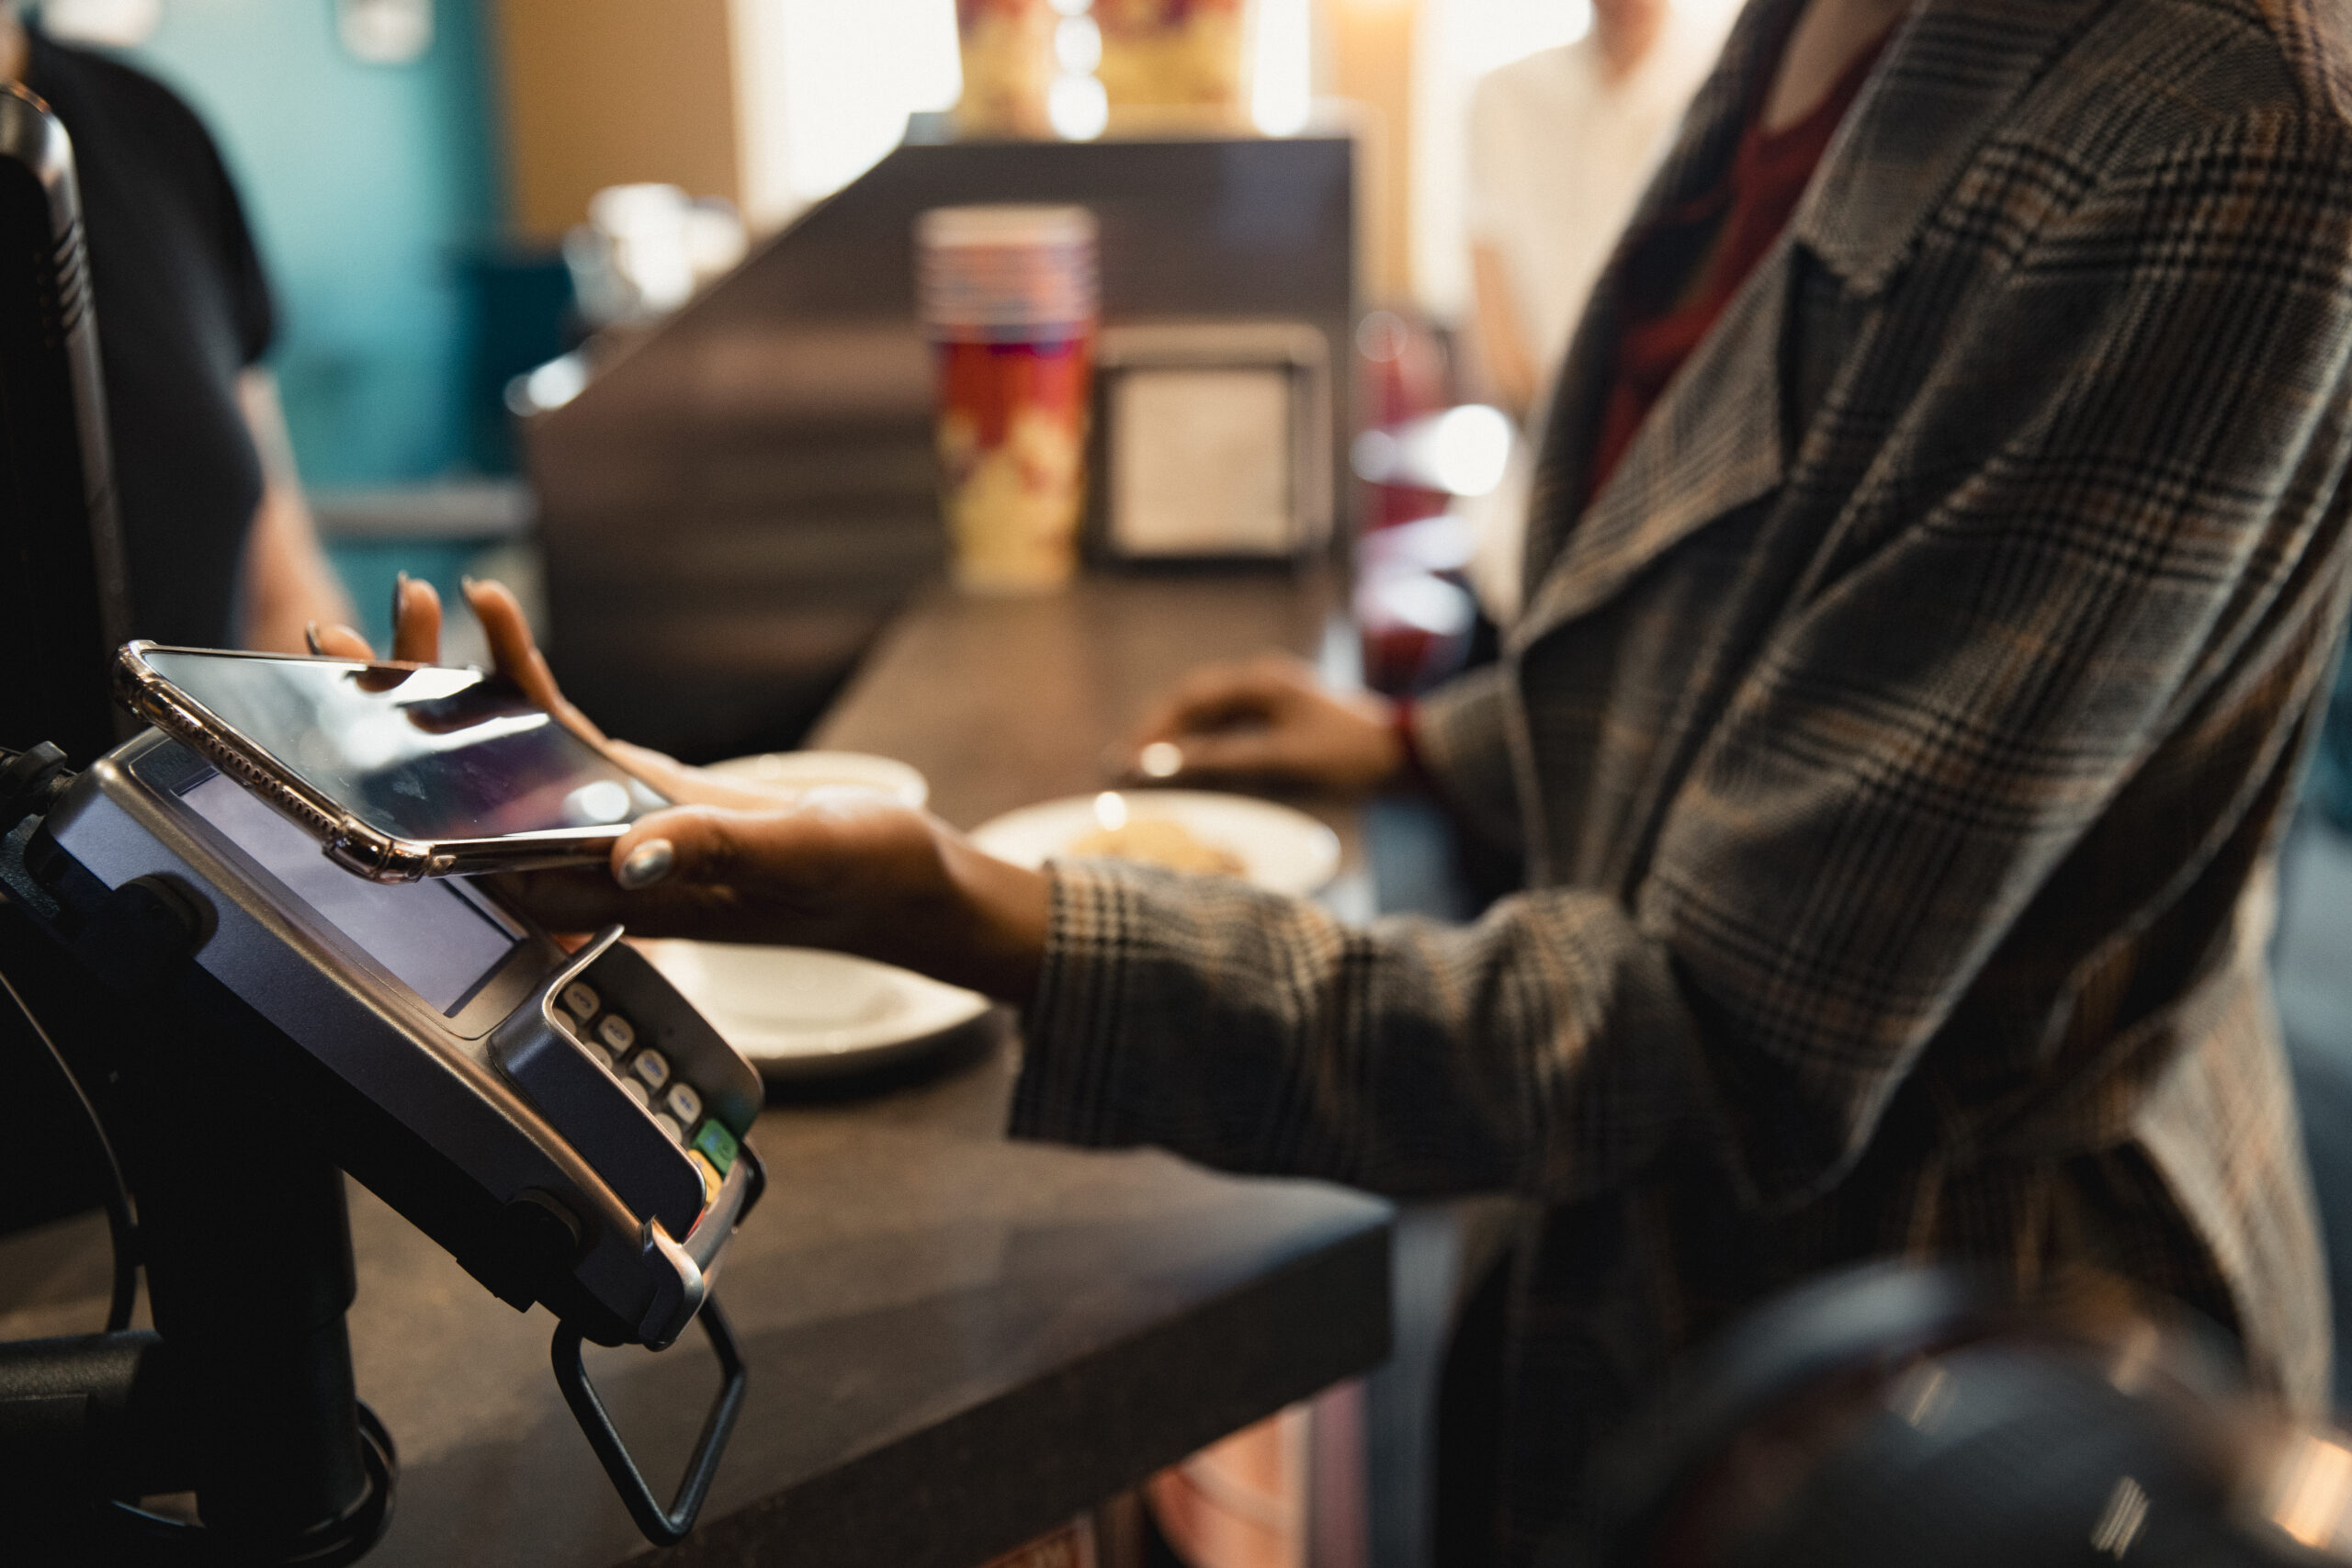 Woman at store paying for item with phone